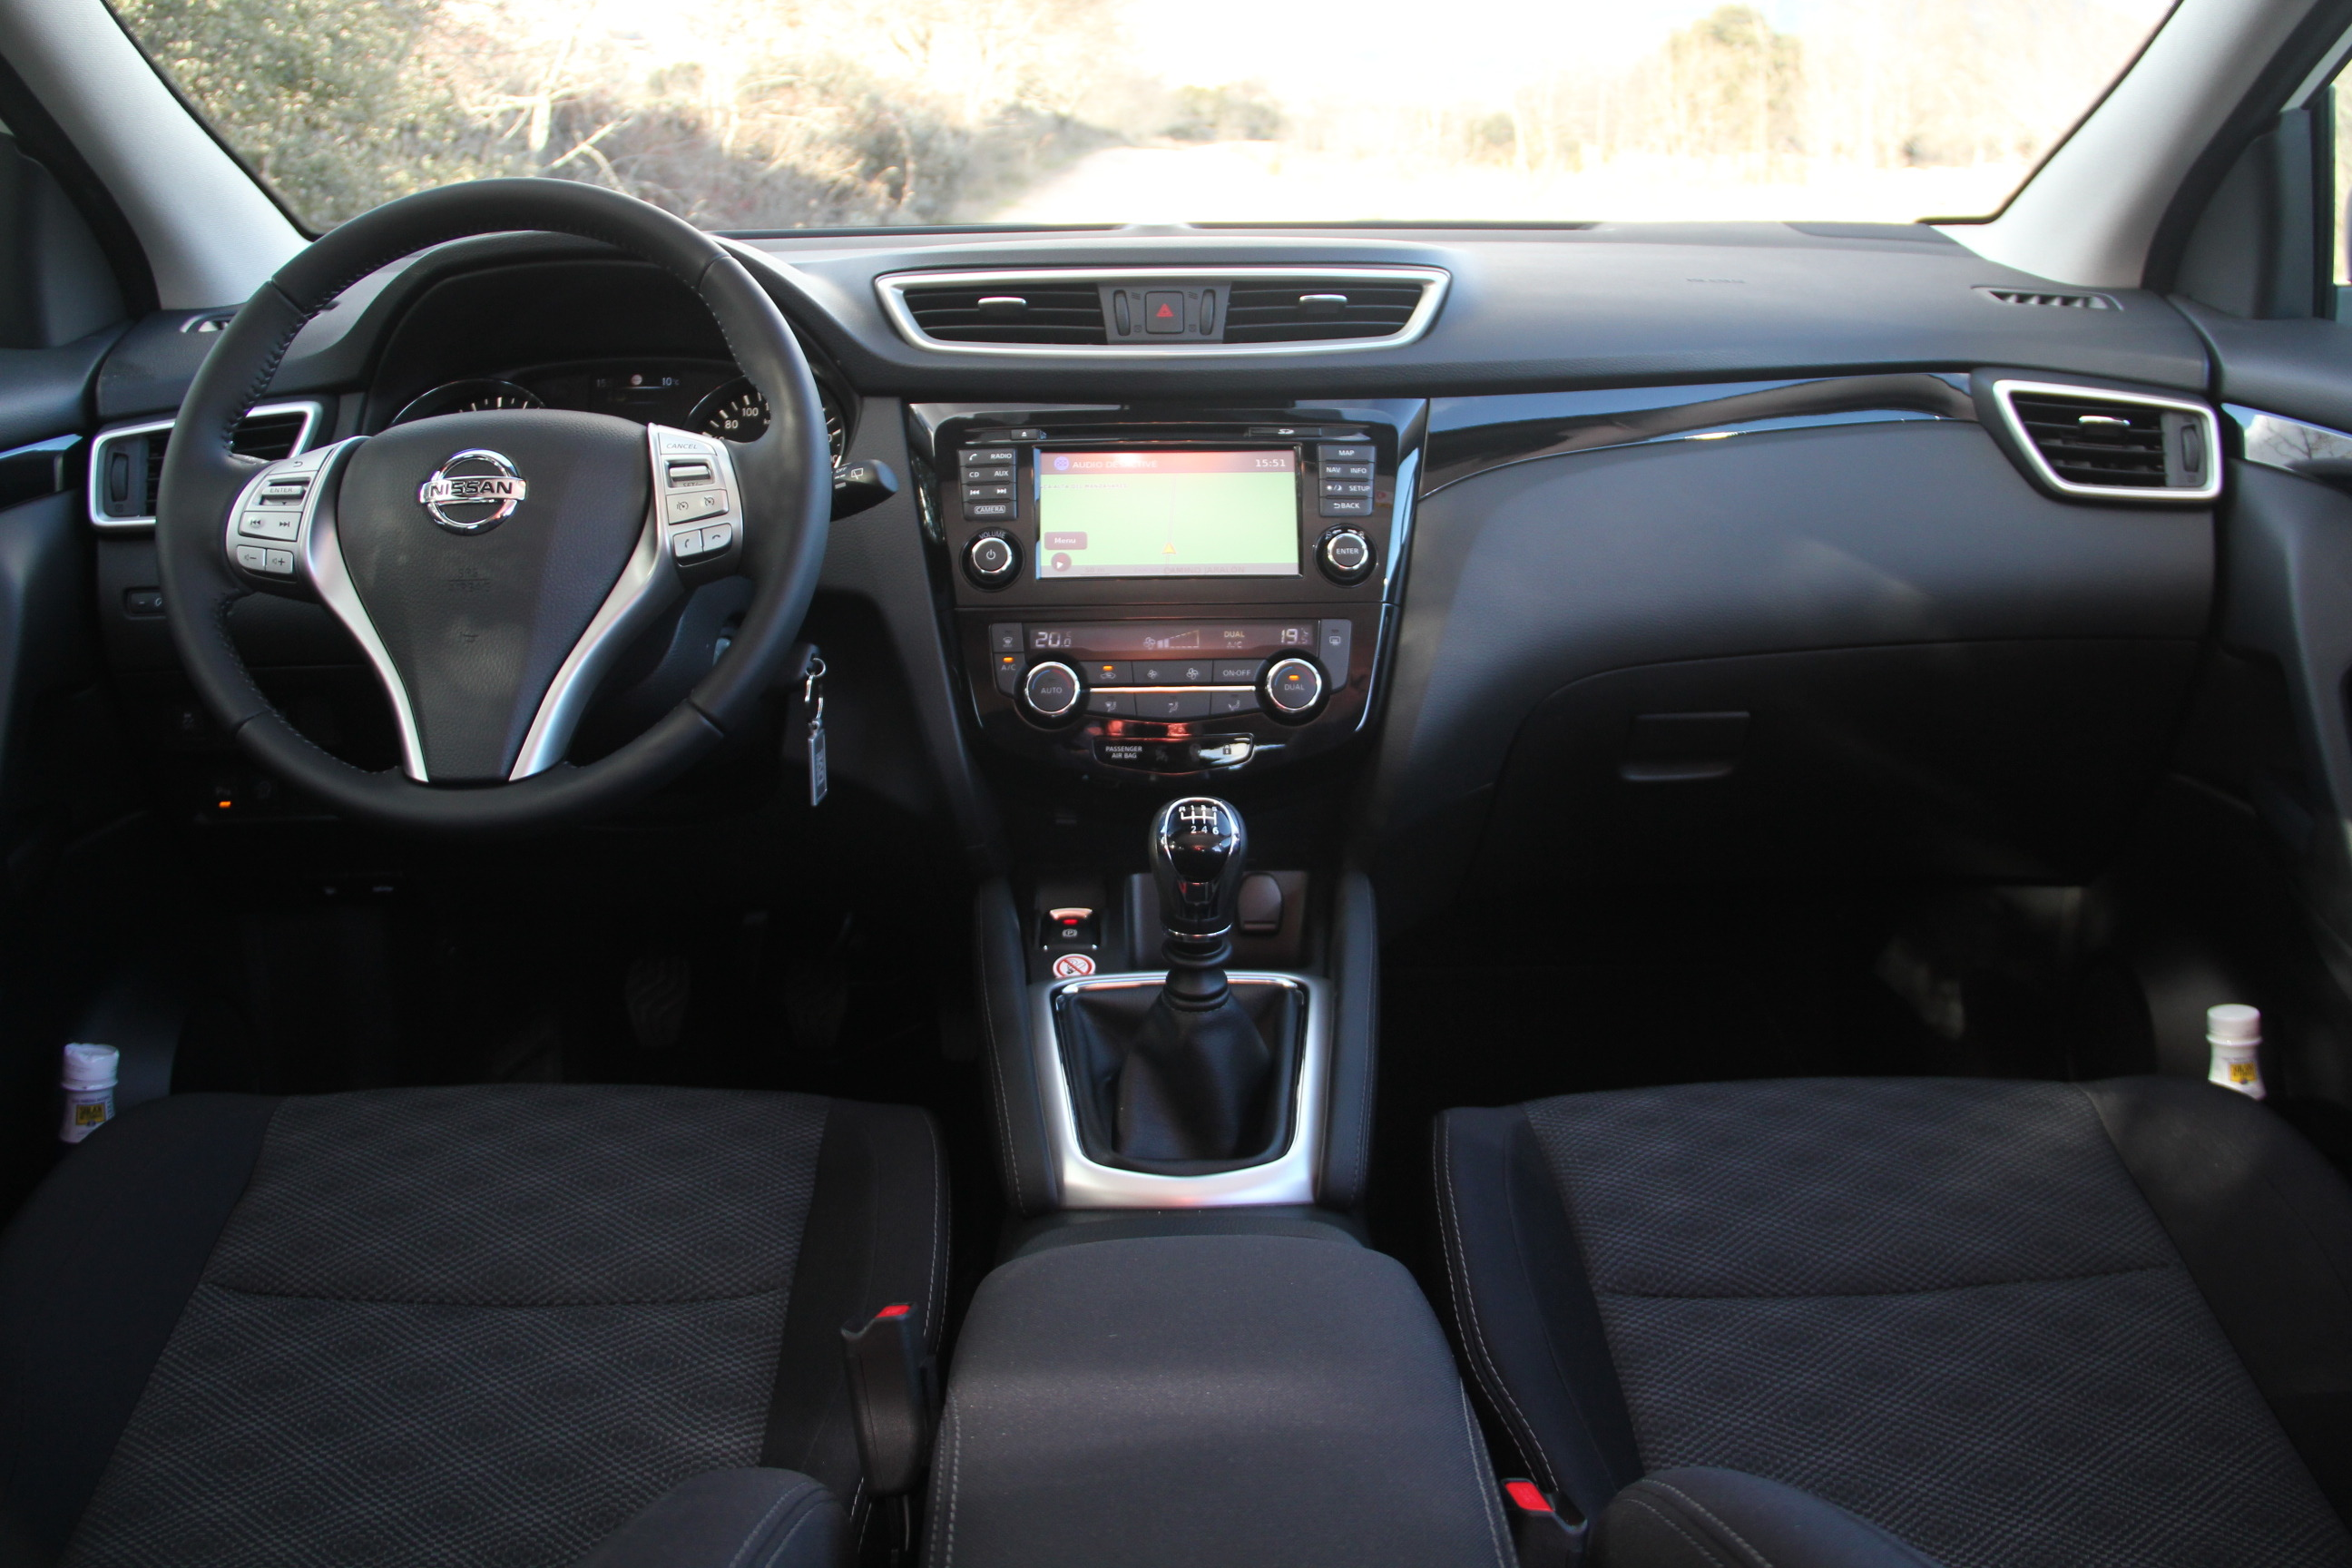 Bataille des suv comparatifs forum autobip for Qashqai 2016 interieur